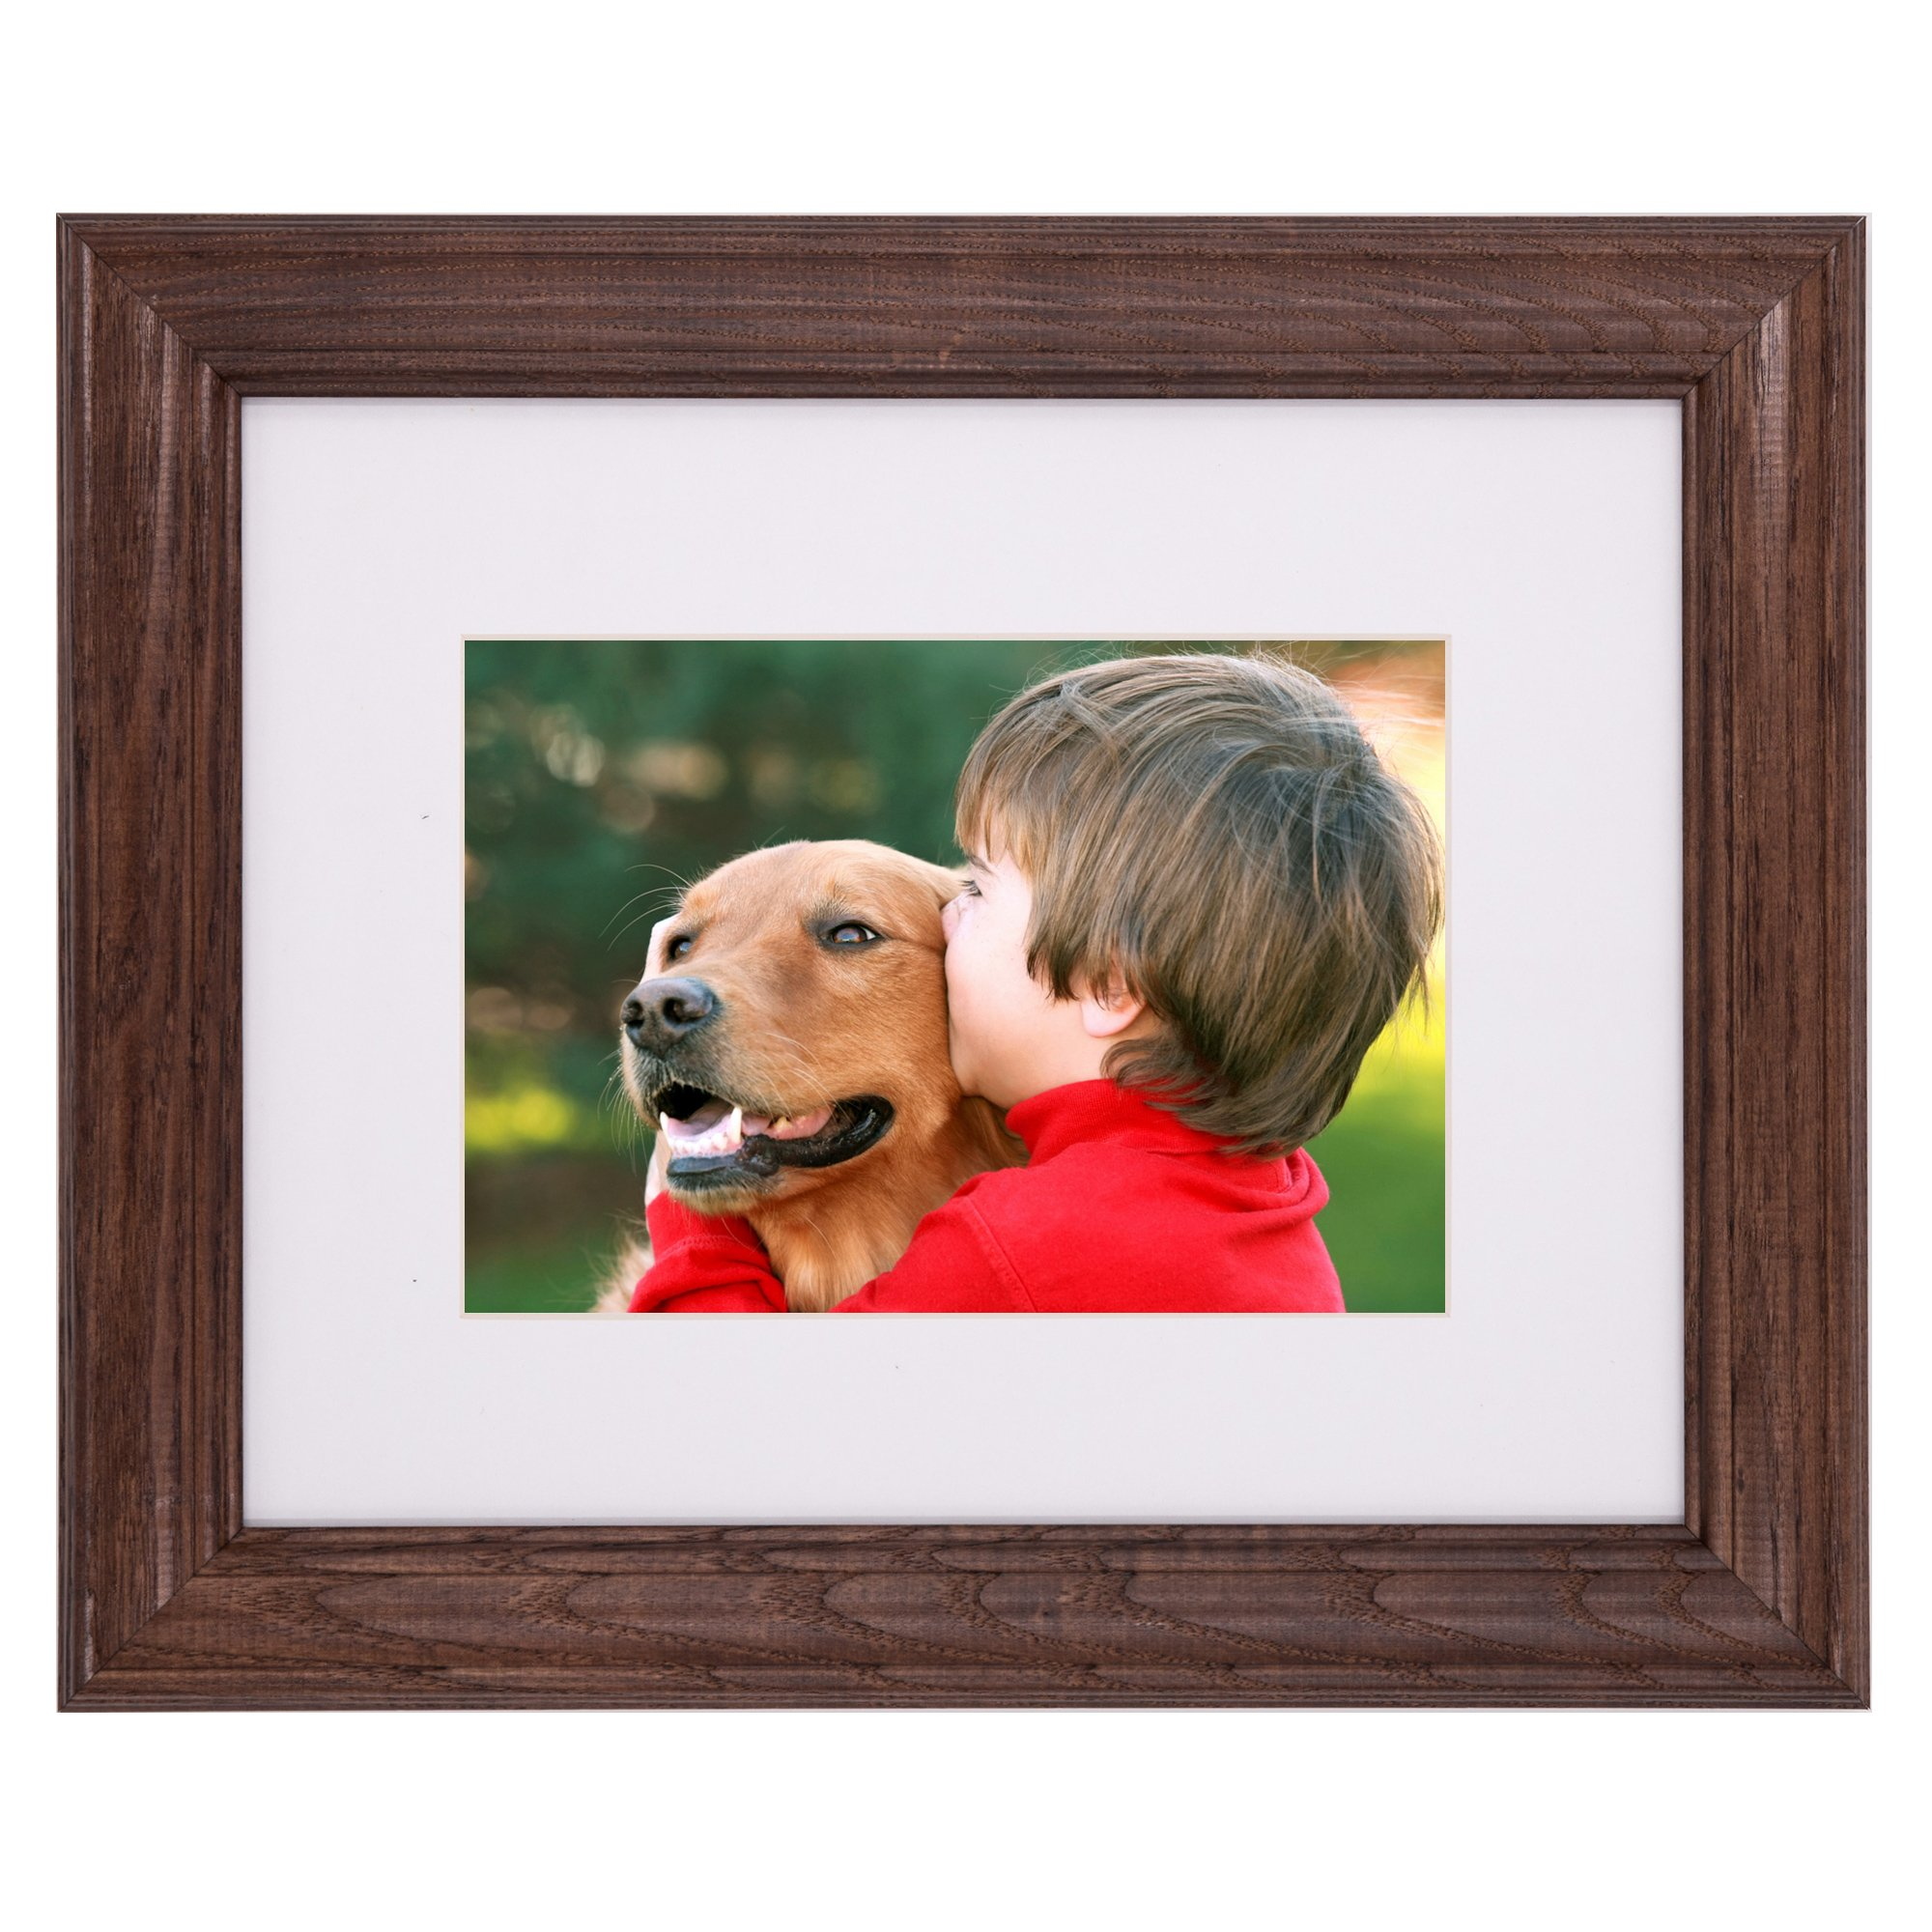 New 8x10 Picture Frame - Dark Oak Ash Hardwood w/Mat for Family & Friends Photos, 1-1/4 Inch Wide Molding - Hand Made in USA by Northern Promotions